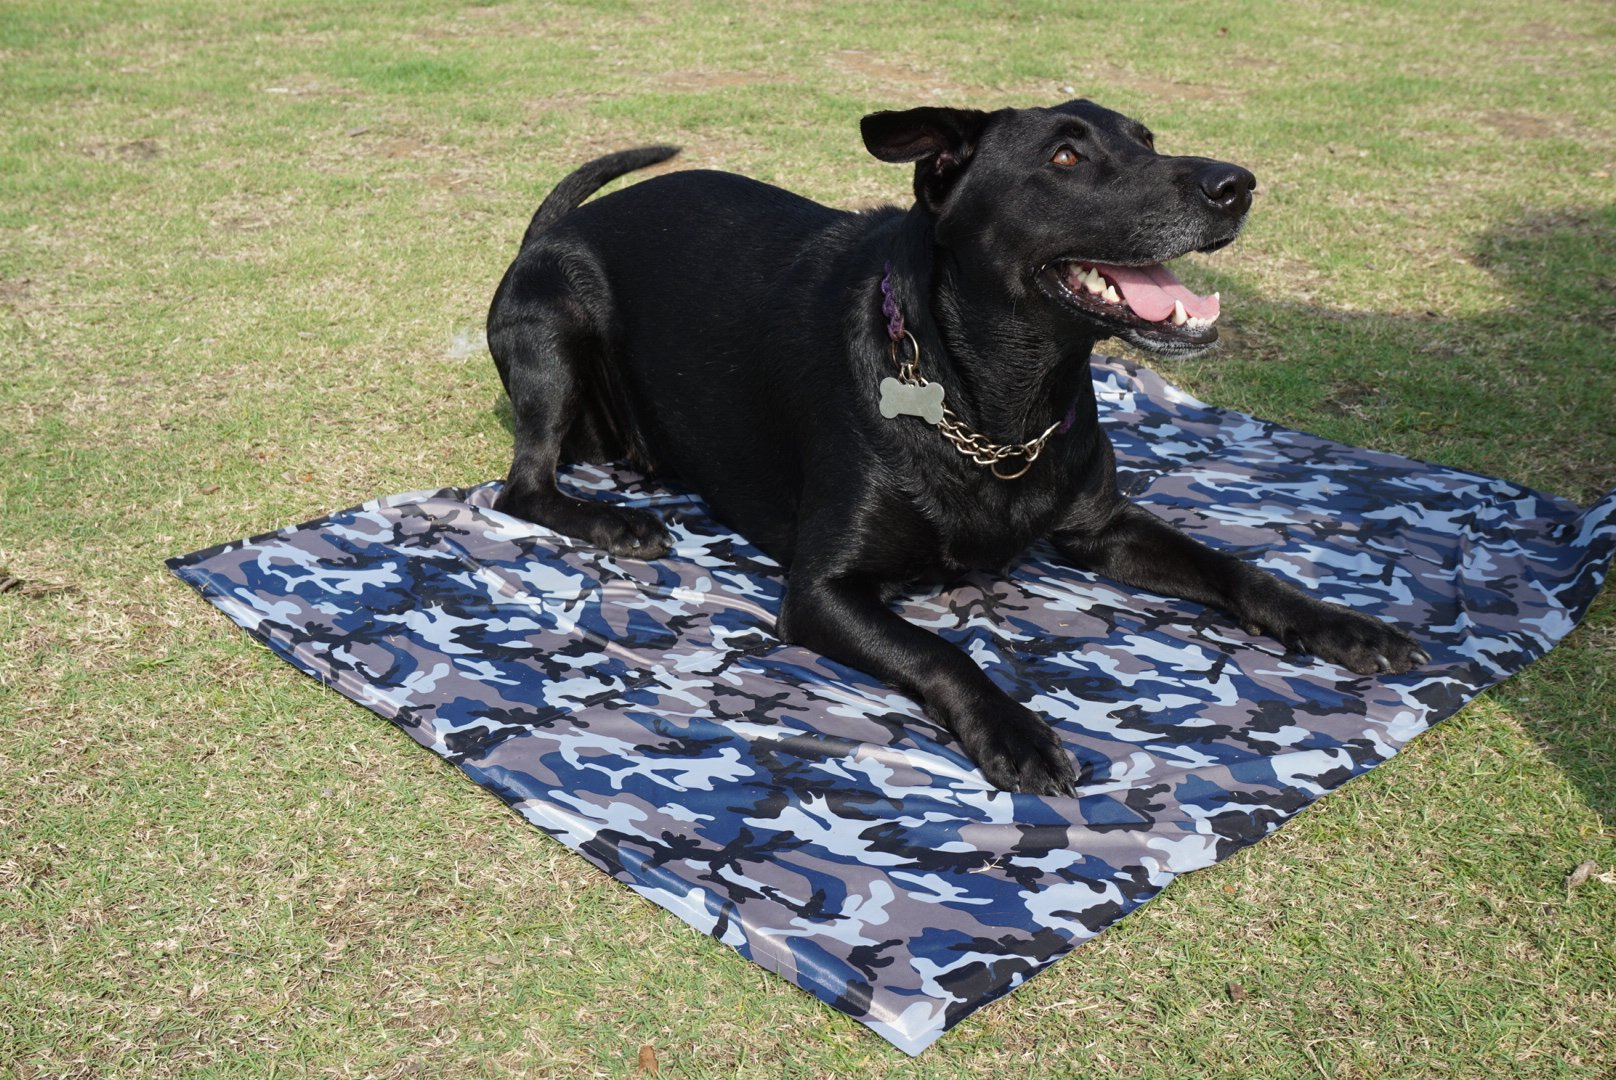 Ouzen Pet Chilled Dog Self Cooling Mat Pad for Kennels,Couches, Car Seats,Crates and Beds (XL) by Ouzen (Image #5)